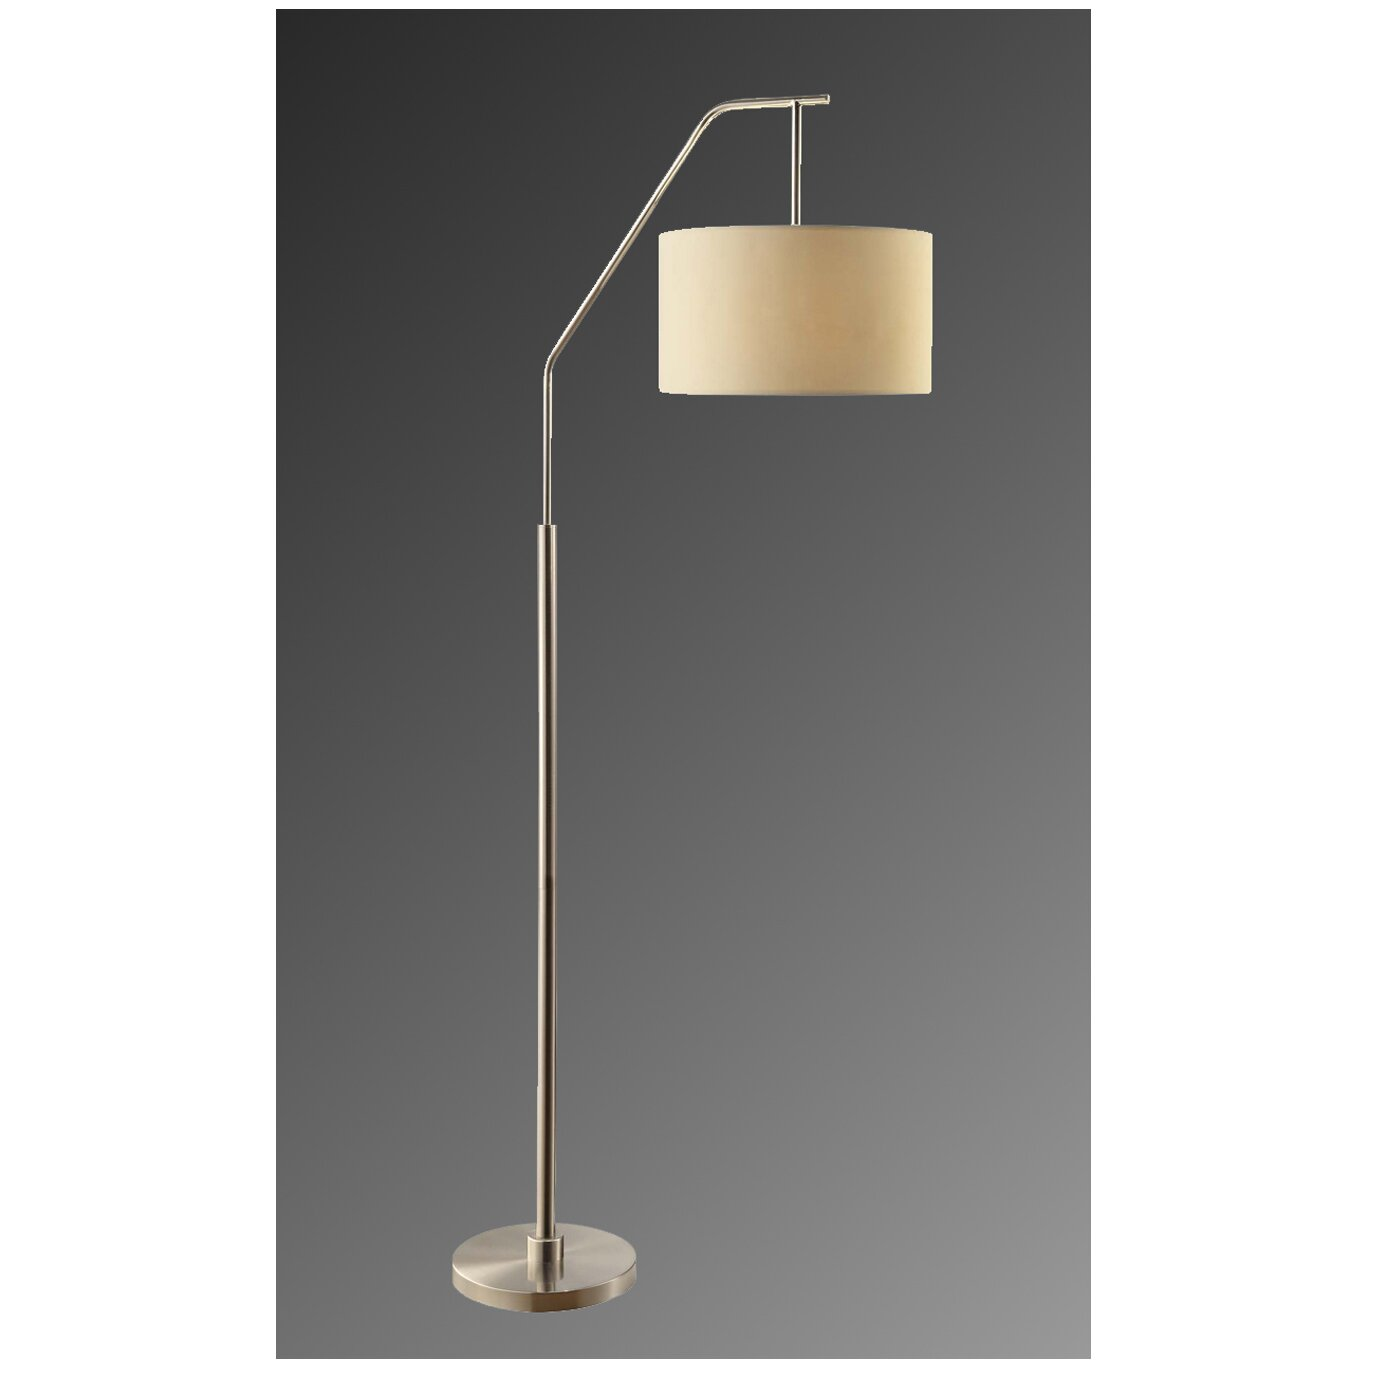 crestview dinsmore 72quot arched floor lamp reviews wayfair With dinsmore 1 light floor lamp